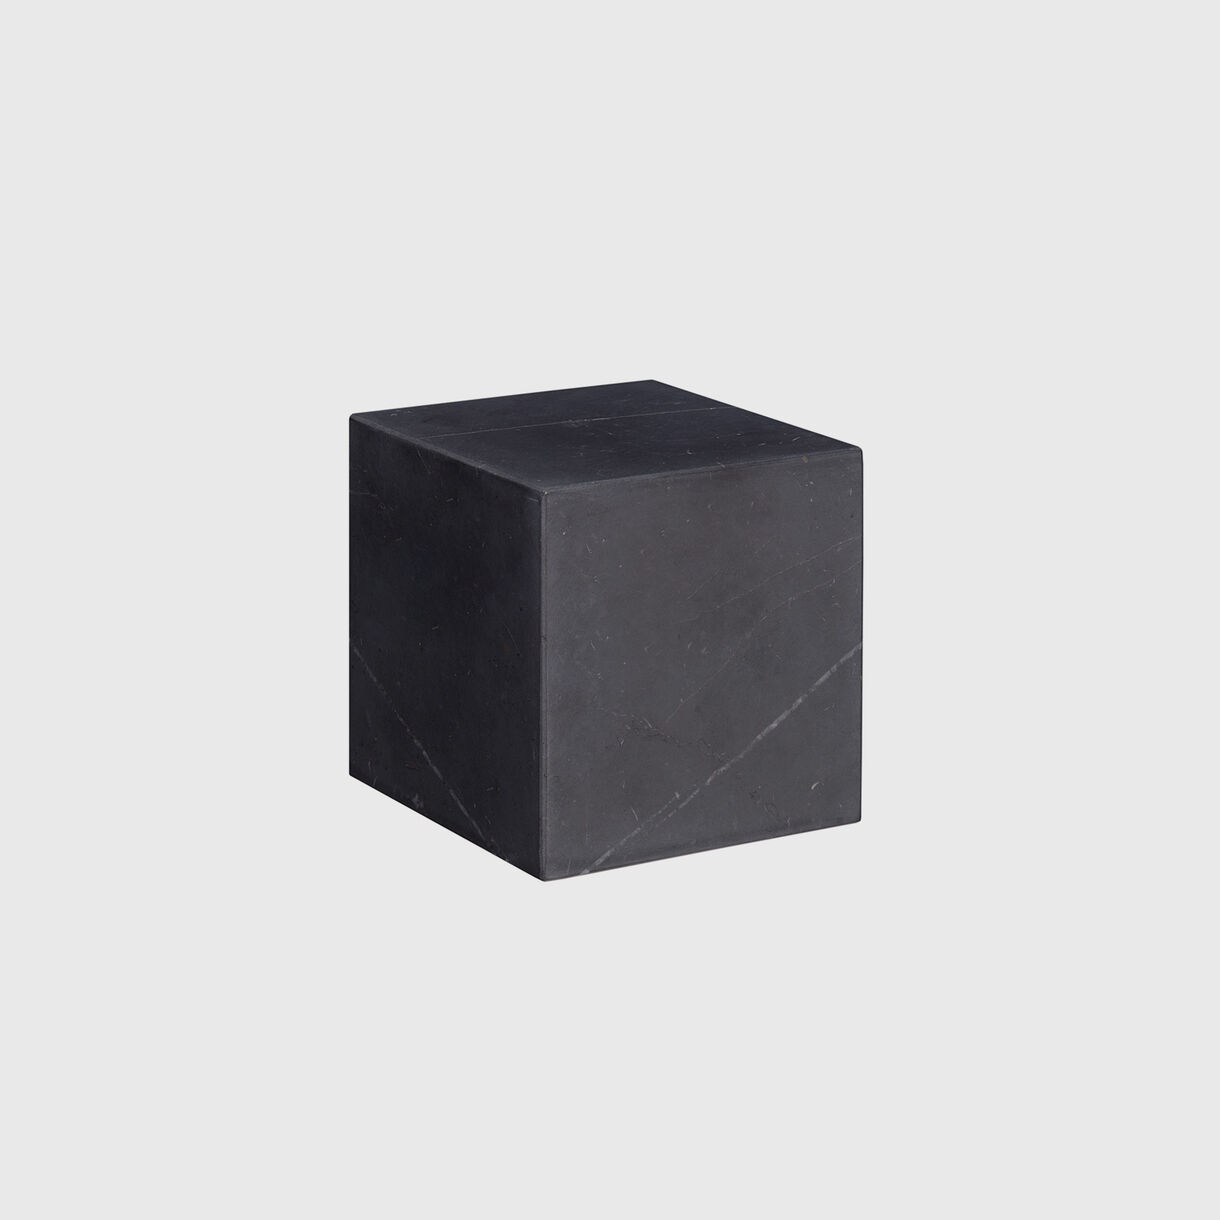 Stop Bookend, Black Carrara Marble, Small